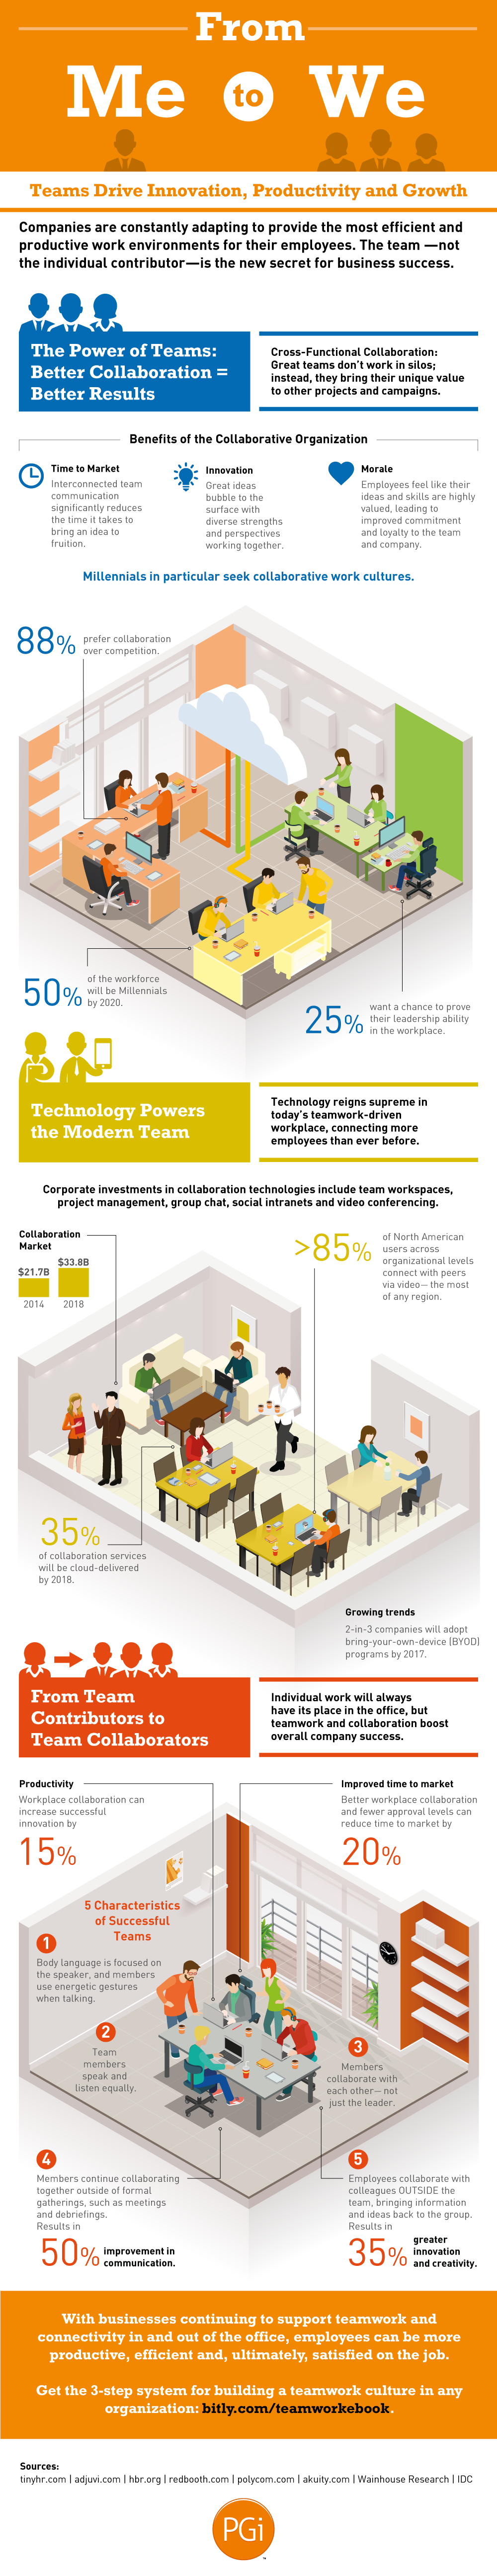 benefits of teamwork the muse infographic courtesy of column five and pgi photo of team biking together courtesy of shutterstock